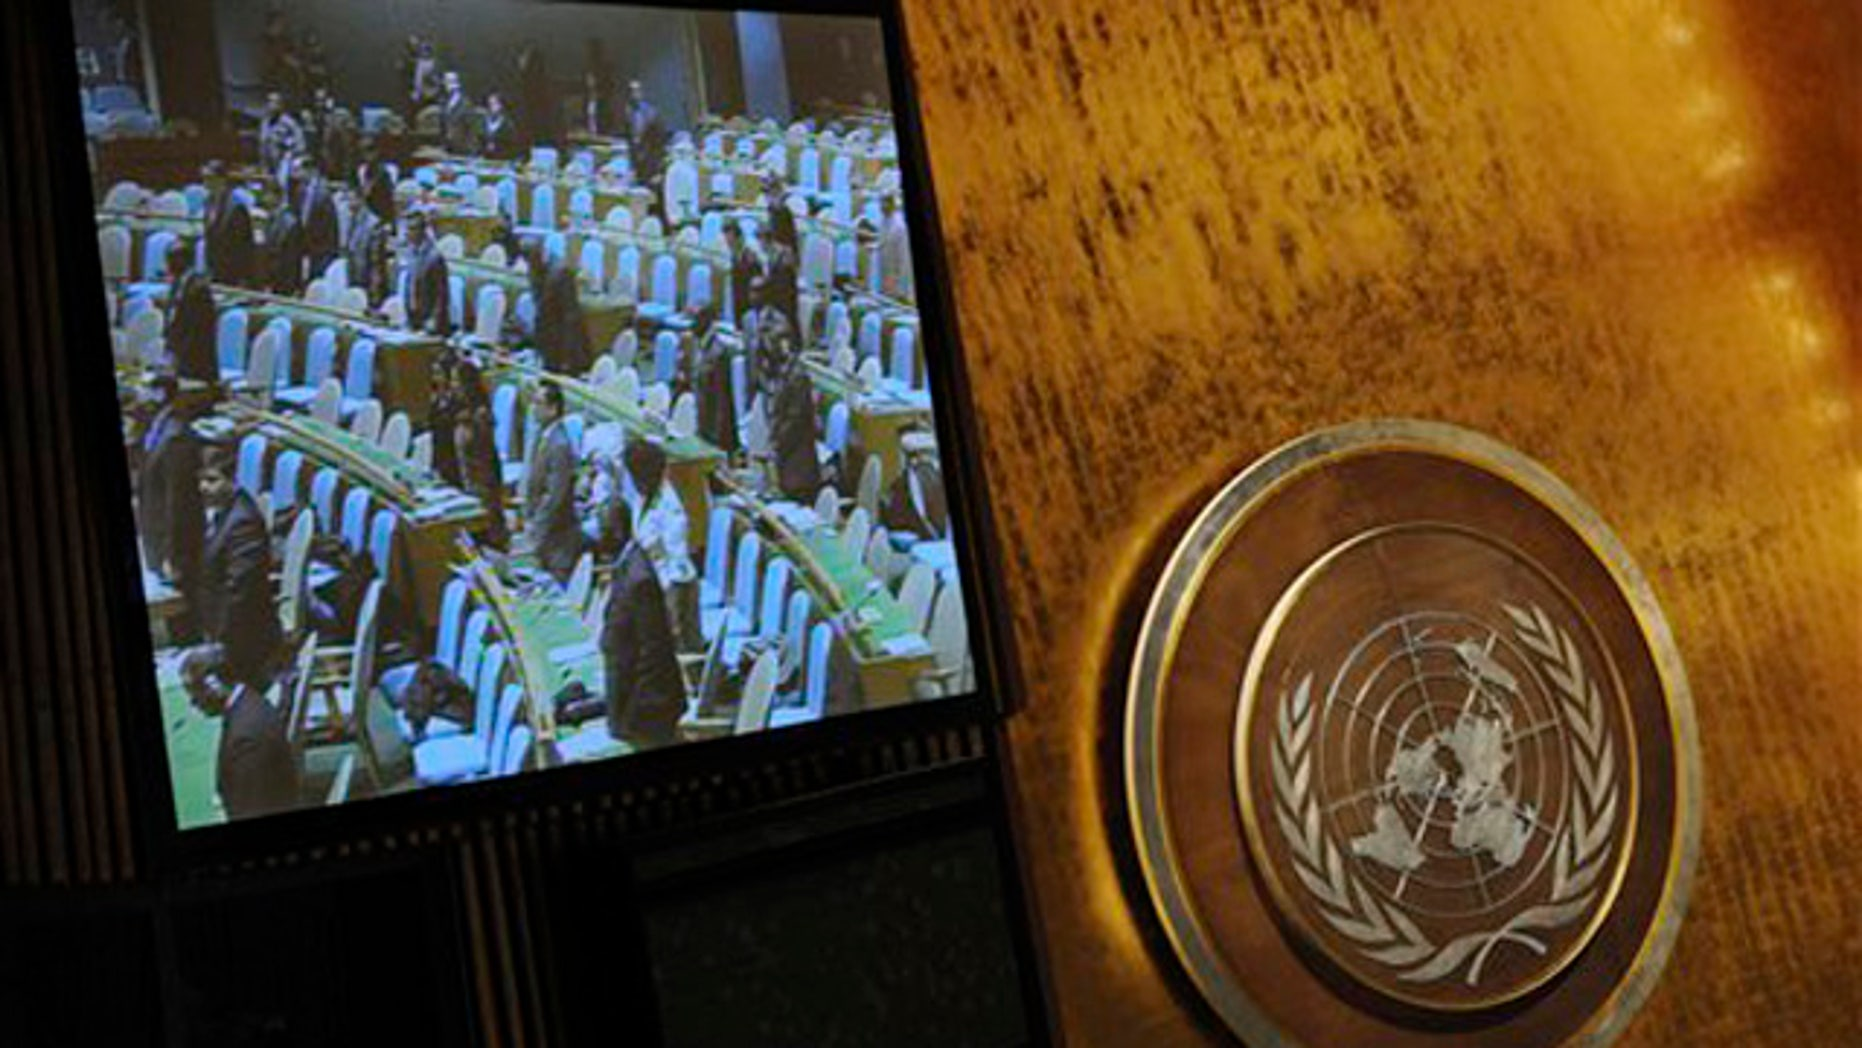 Dec. 22, 2011: In this photo released by China's Xinhua News Agency, the U.N. General Assembly observes a moment of silence to mourn the death of North Korean leader Kim Jong Il at the U.N. Headquarters in New York.